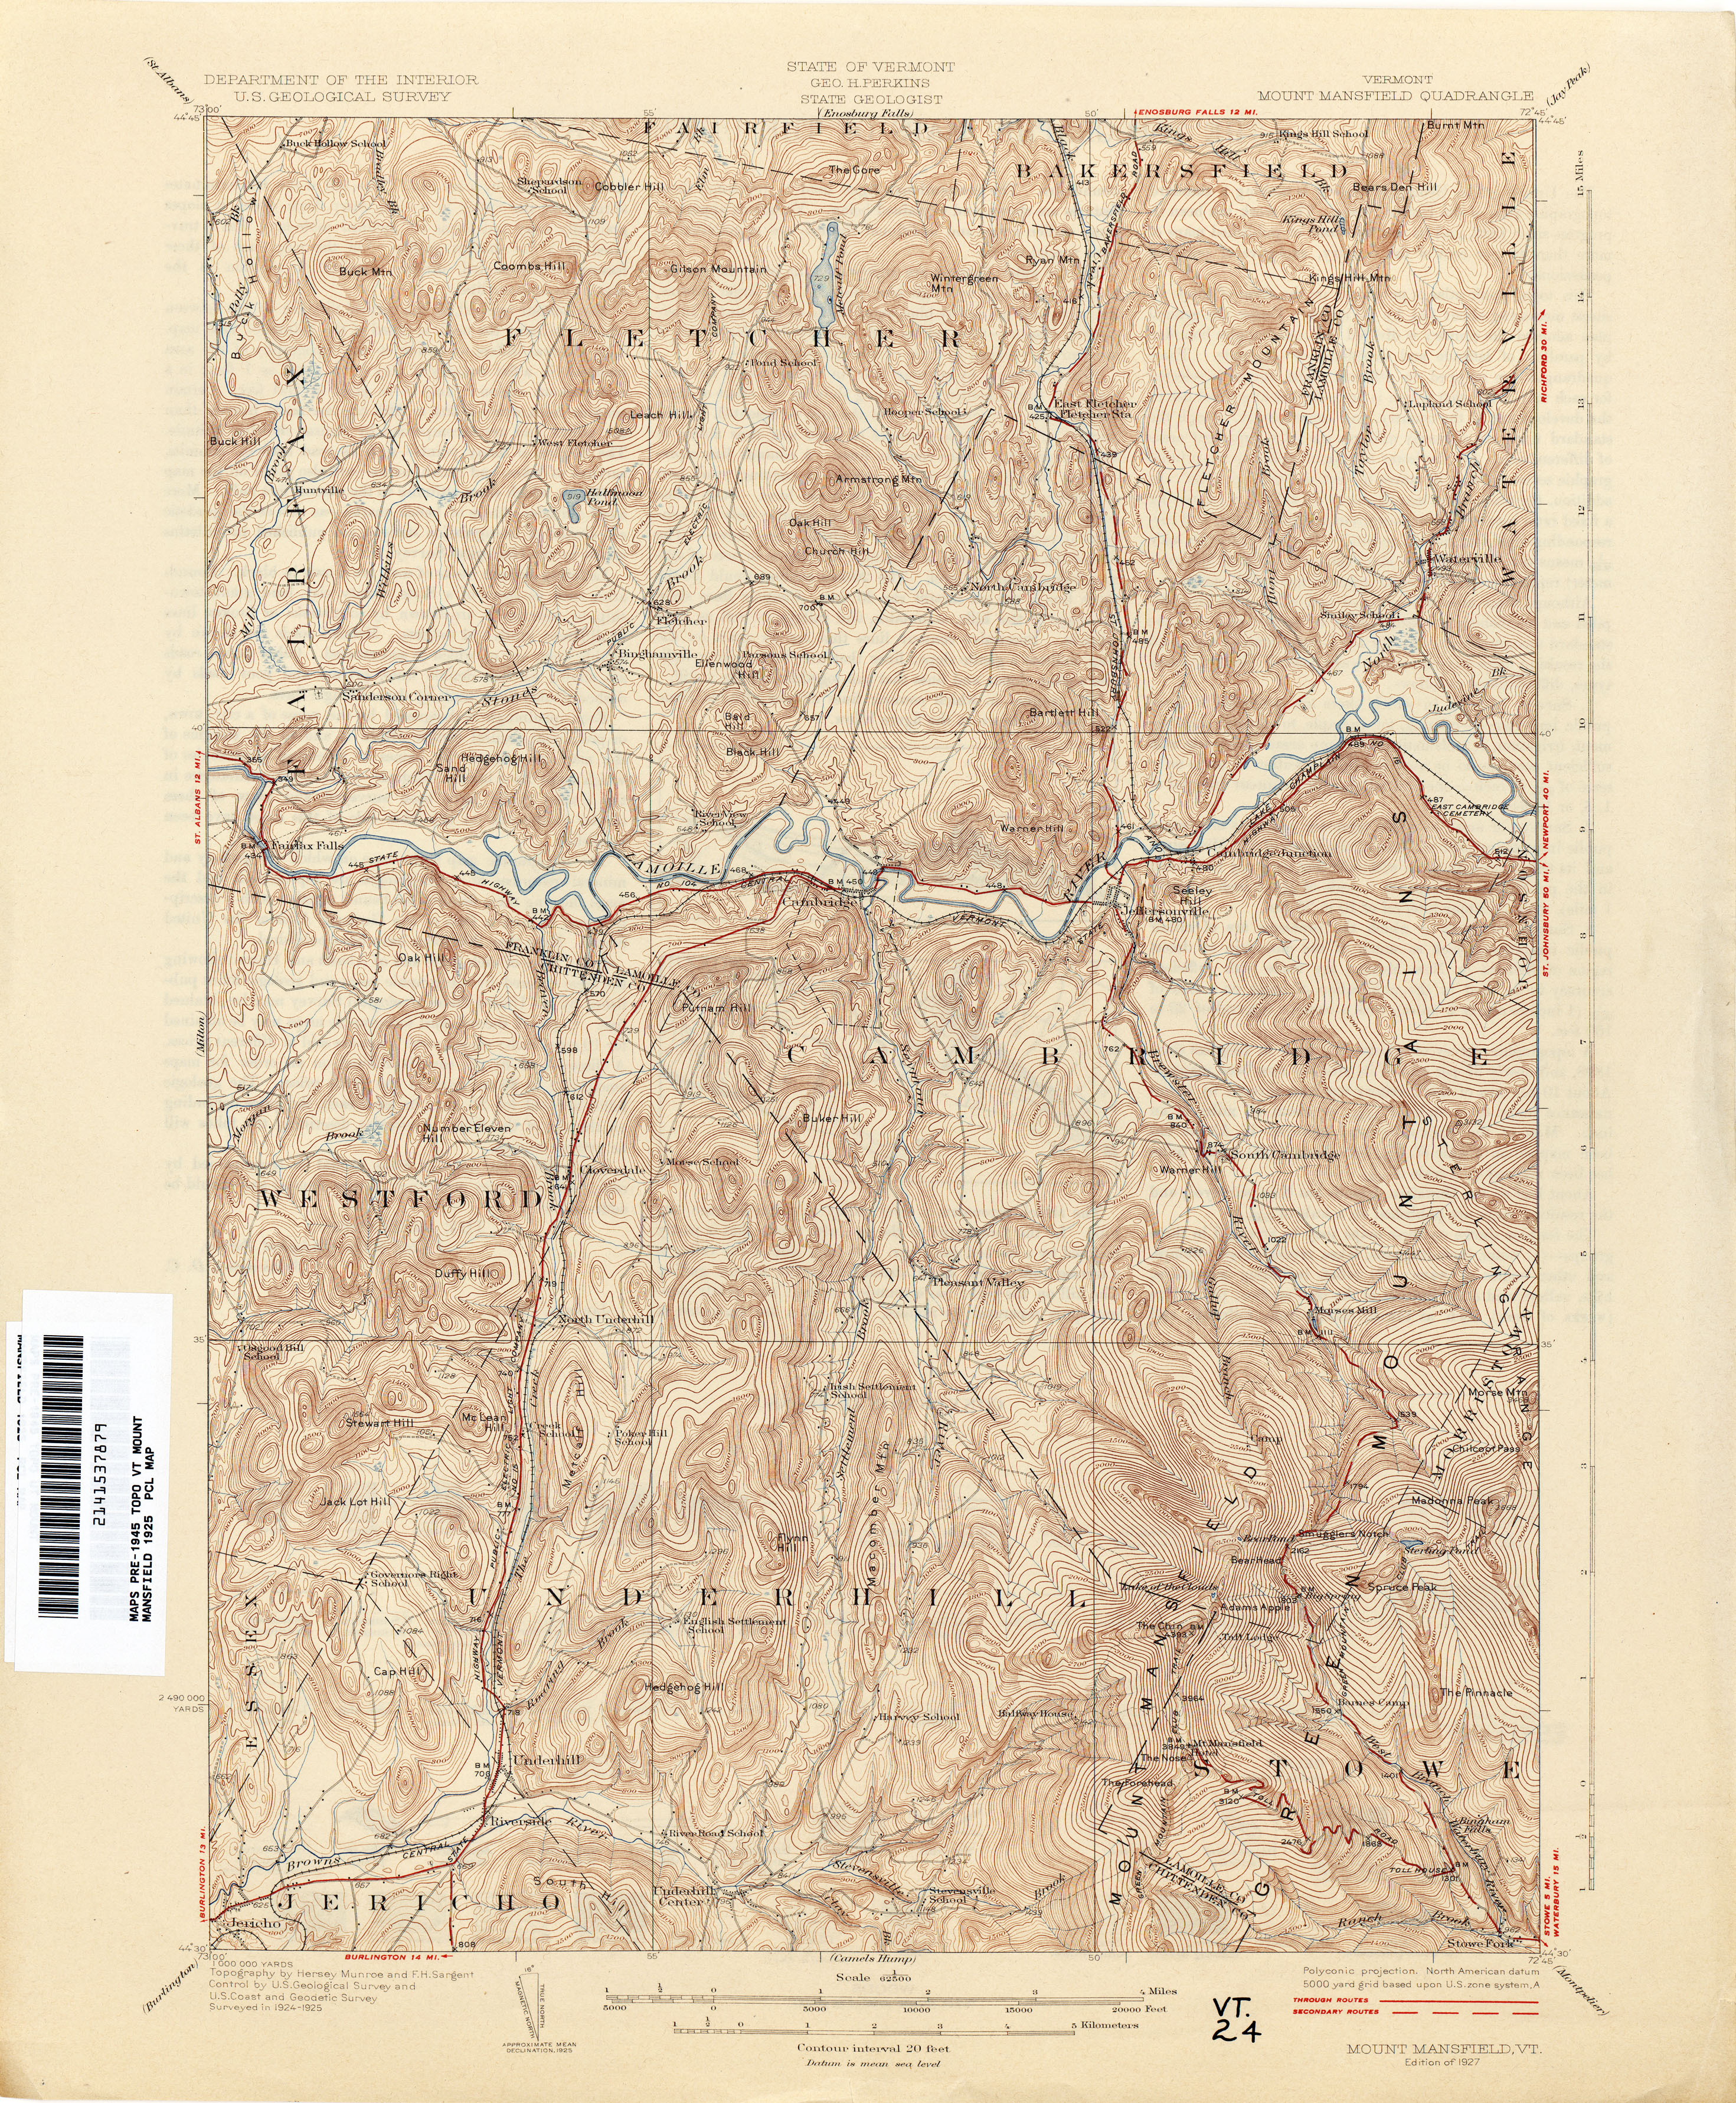 Topographic Map Vermont.Vermont Historical Topographic Maps Perry Castaneda Map Collection